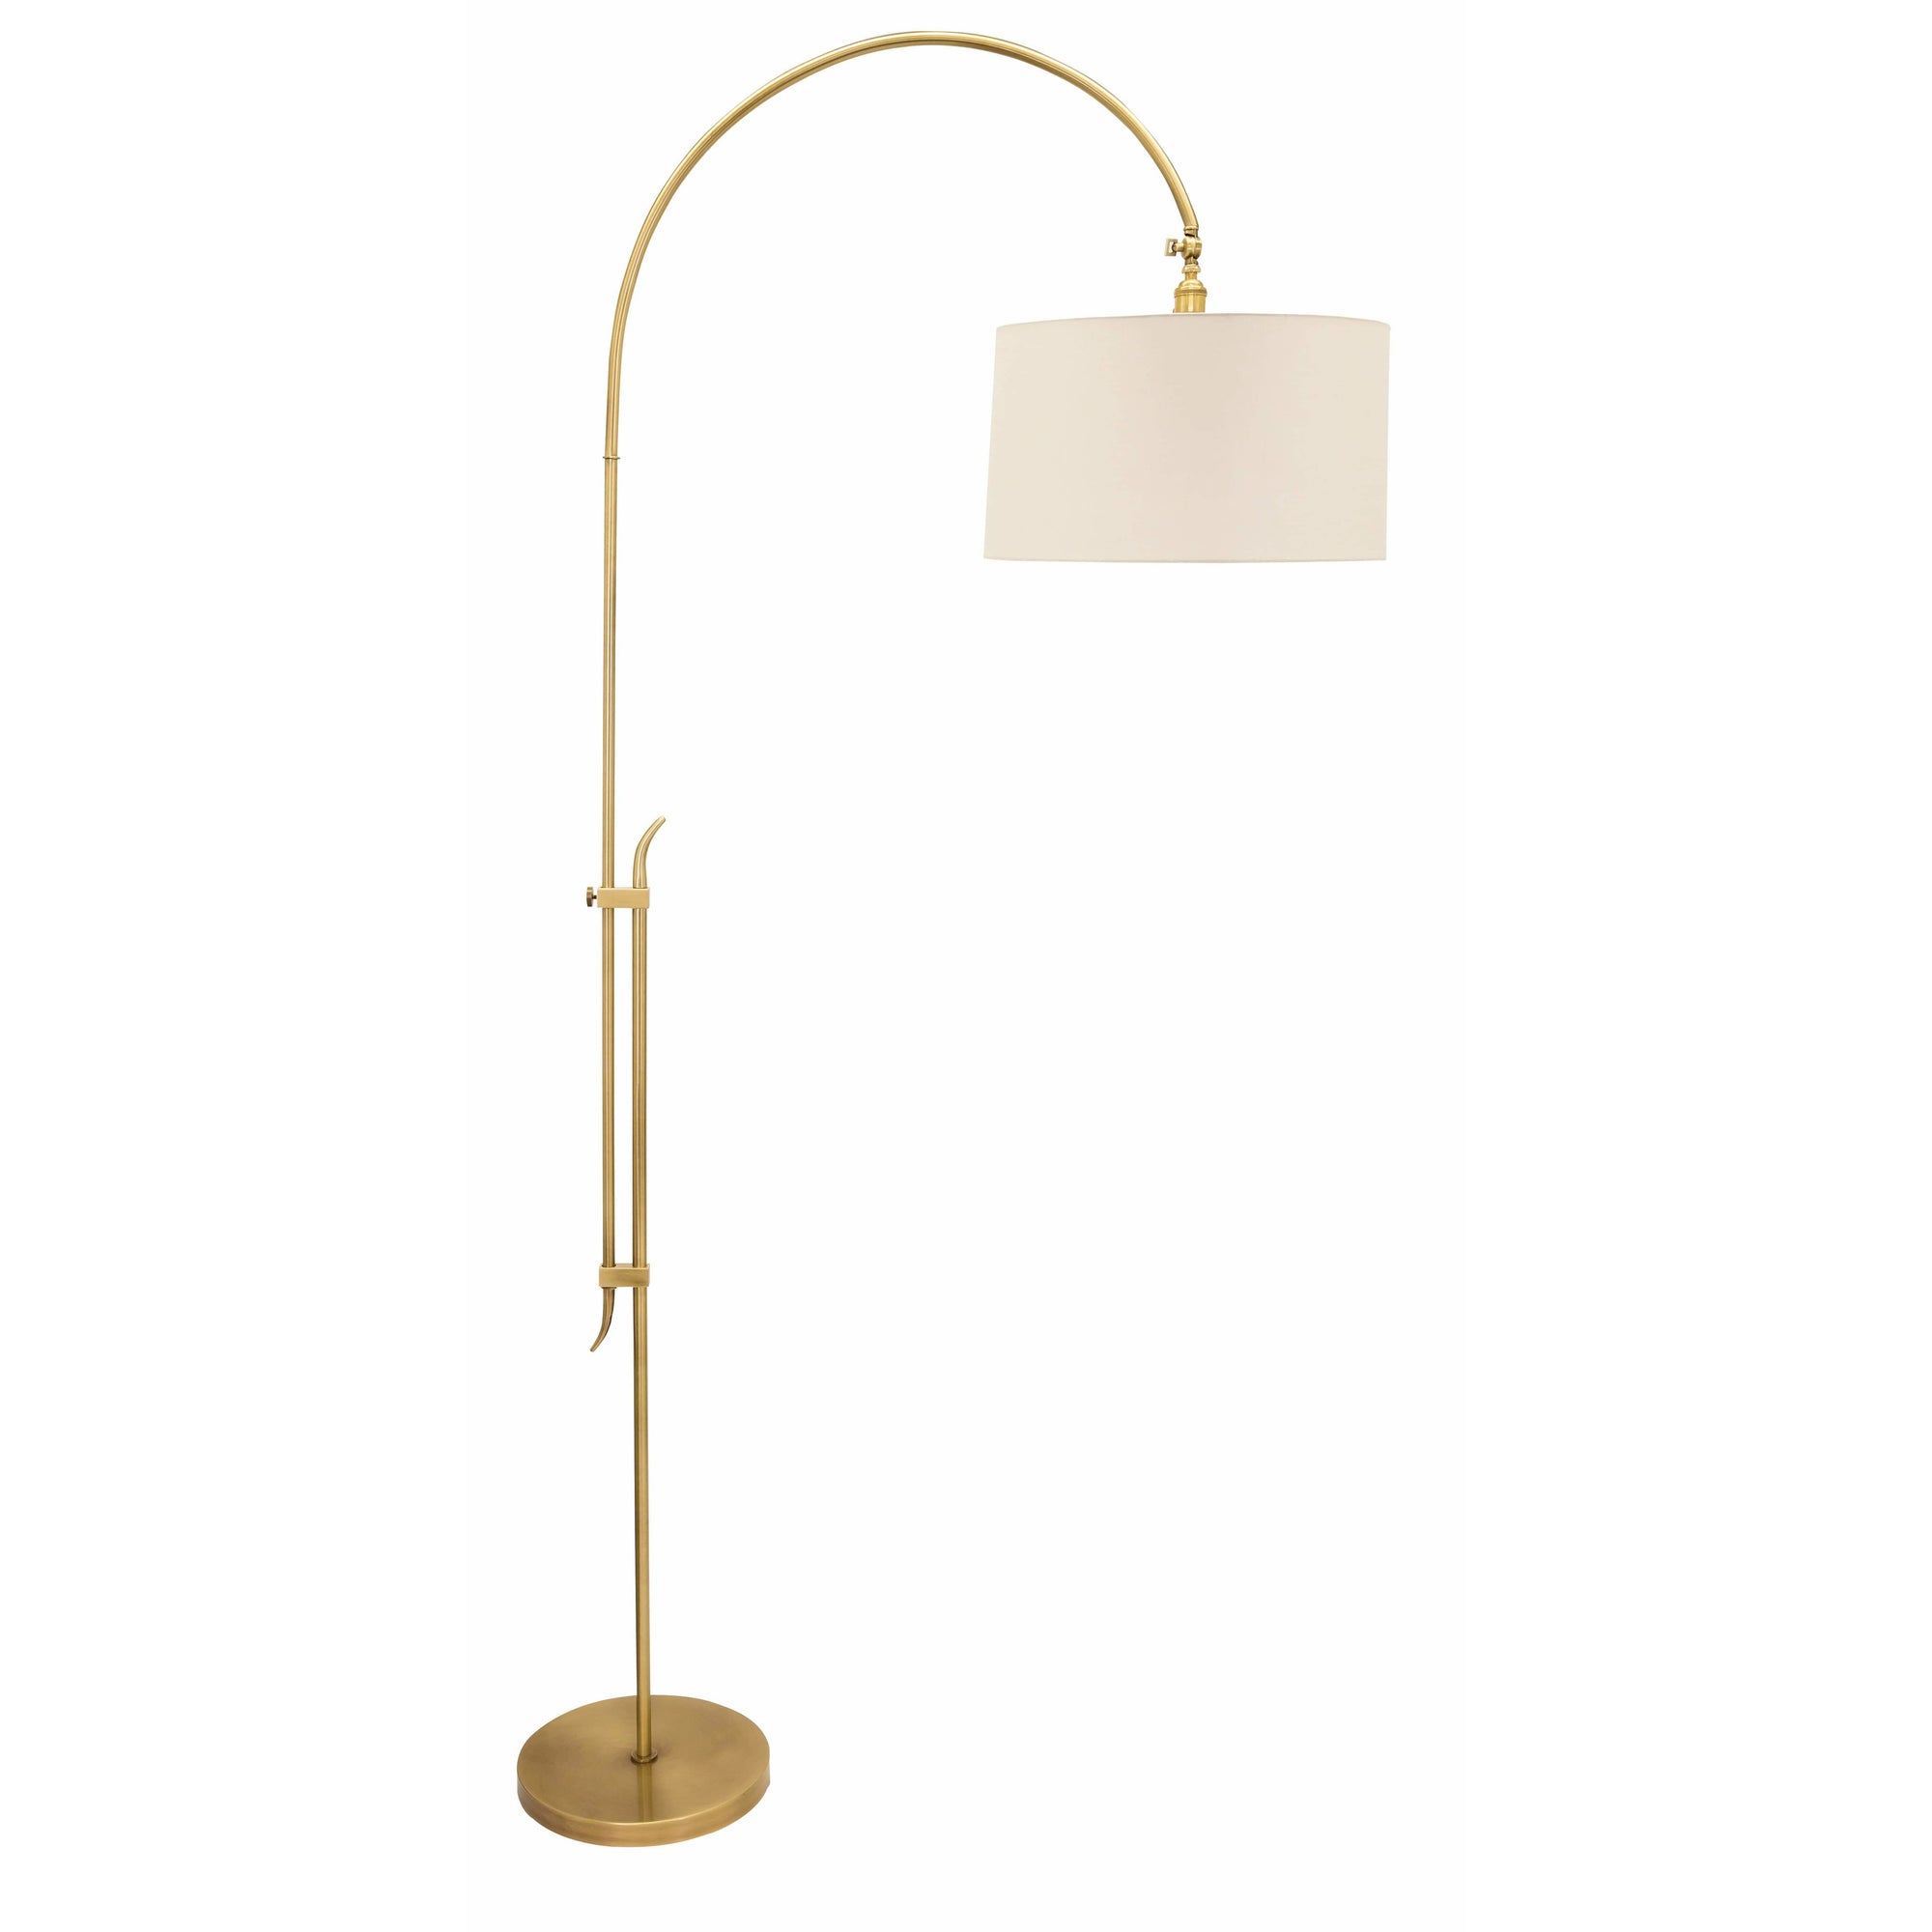 House Of Troy Floor Lamps Windsor Floor Lamp by House Of Troy W401-AB